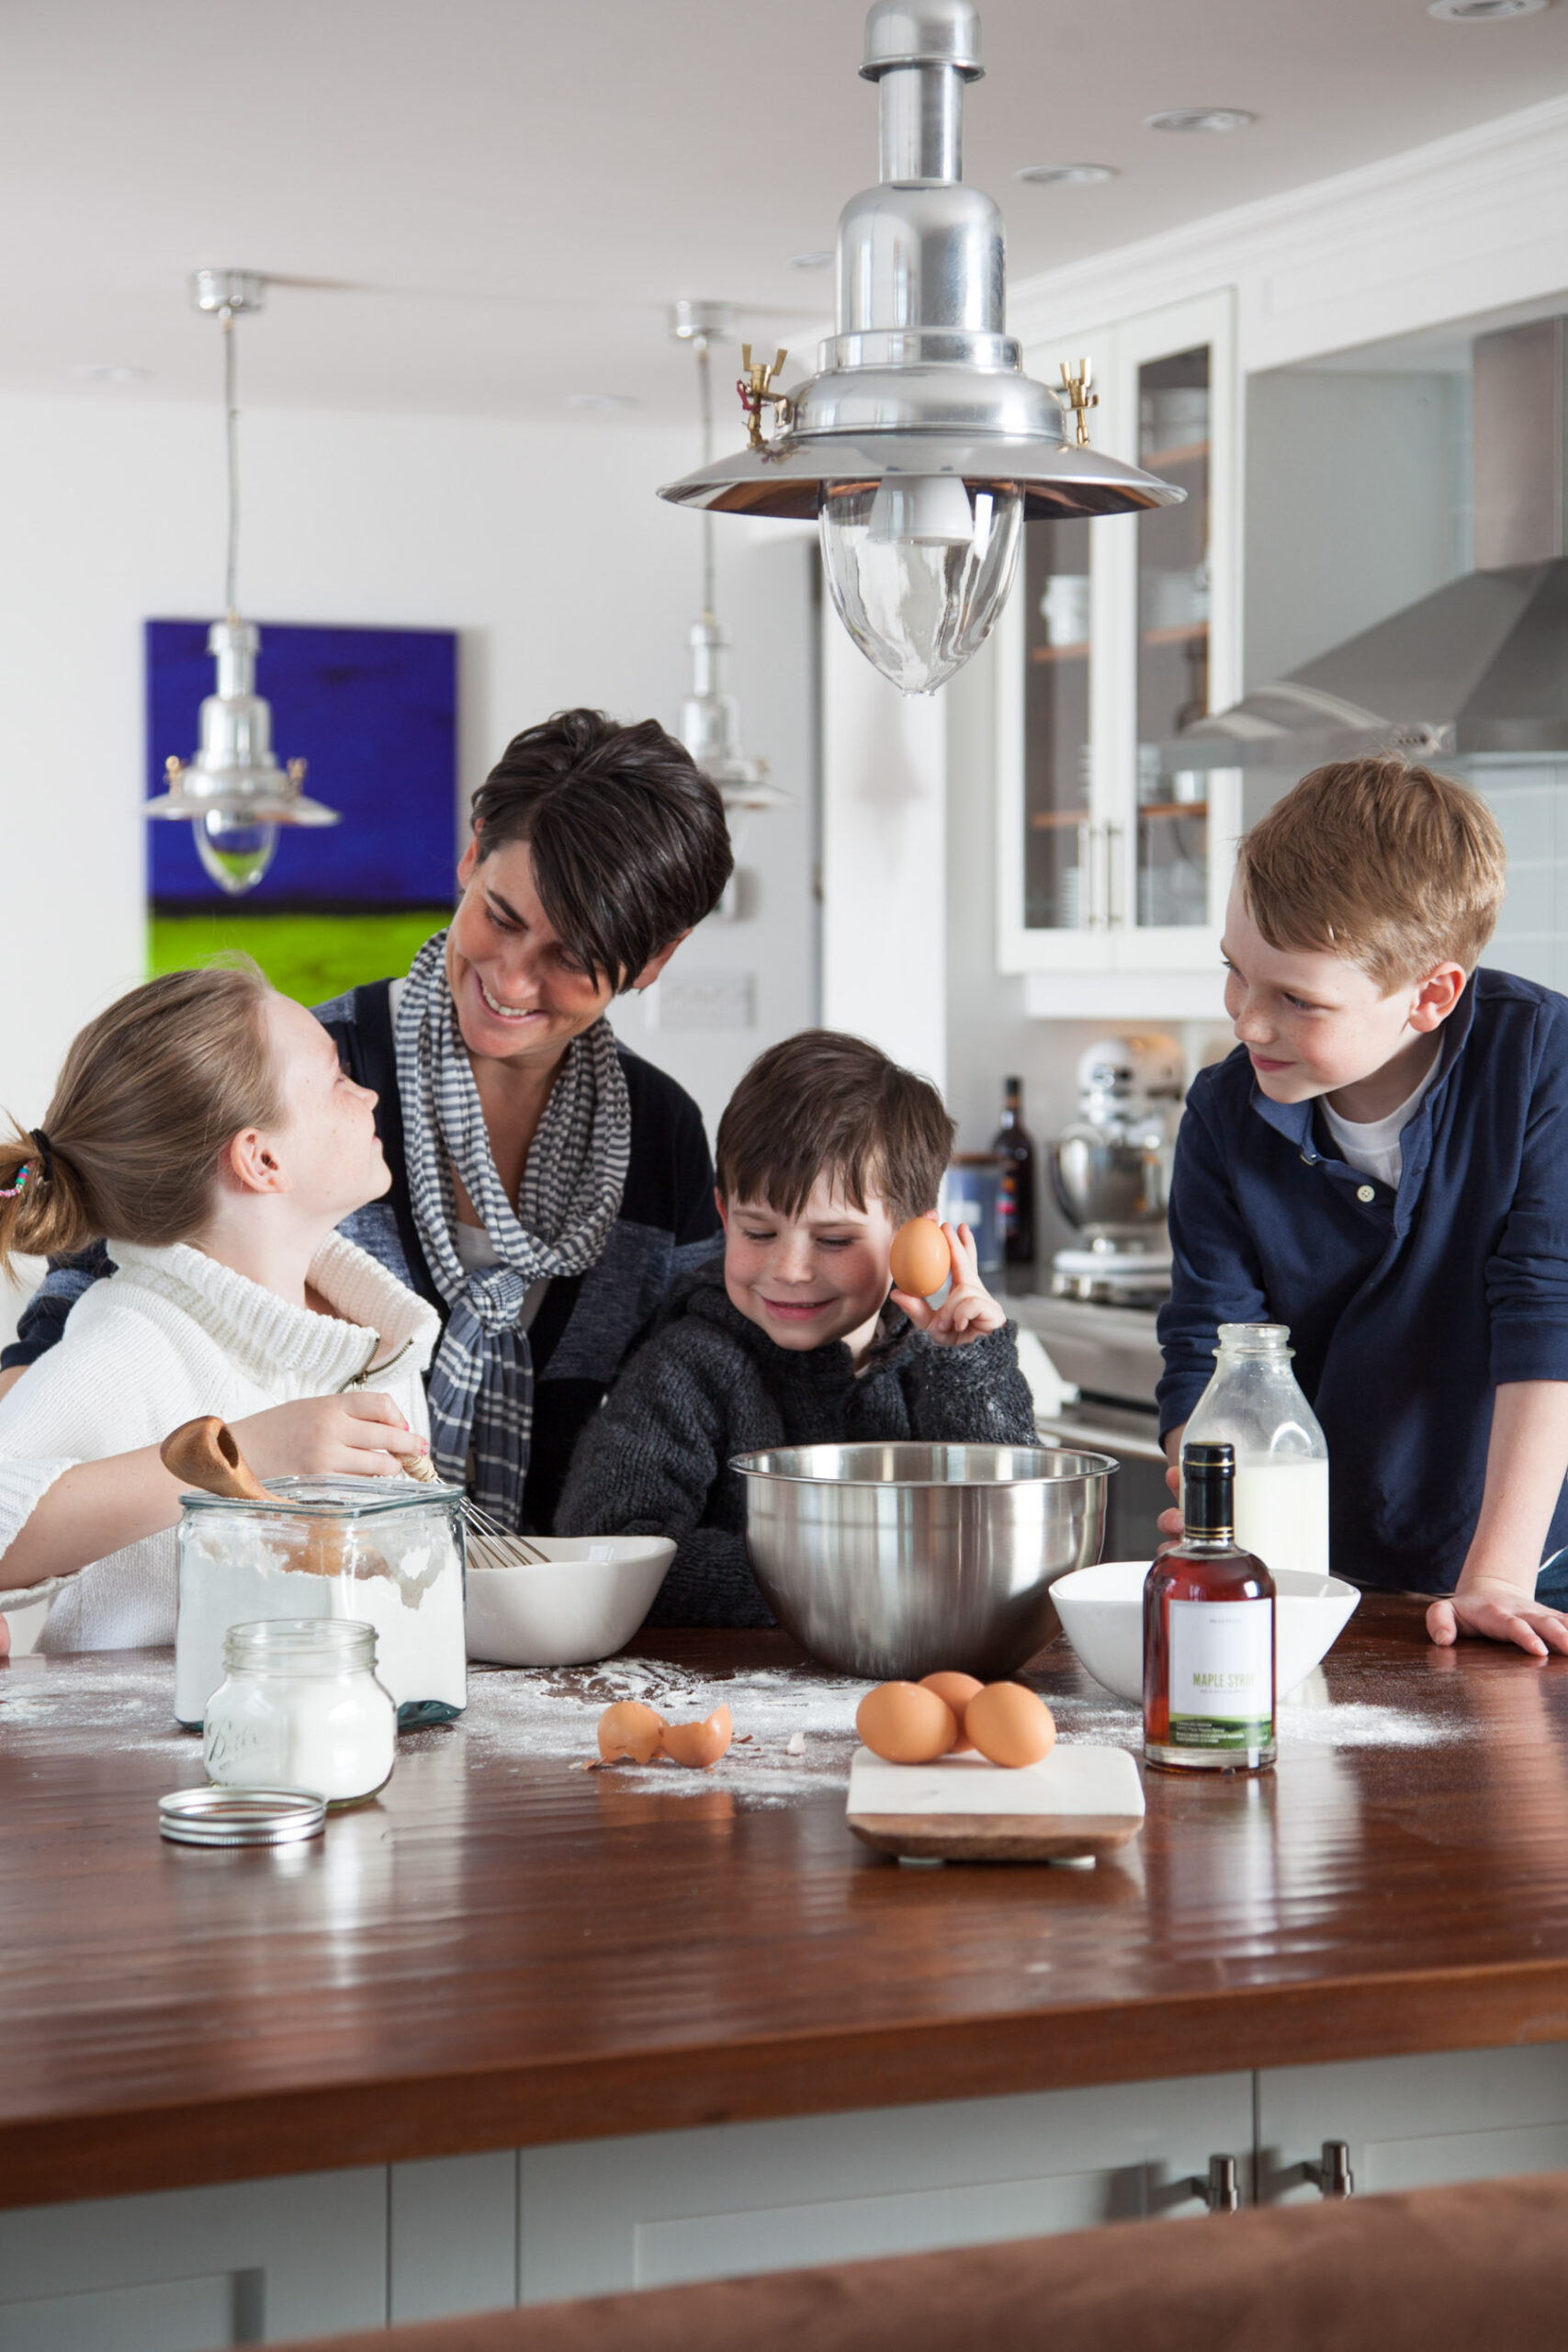 how to use Pancake Tuesday national holiday in your content marketing. Family making pancakes, smiling, and having fun.